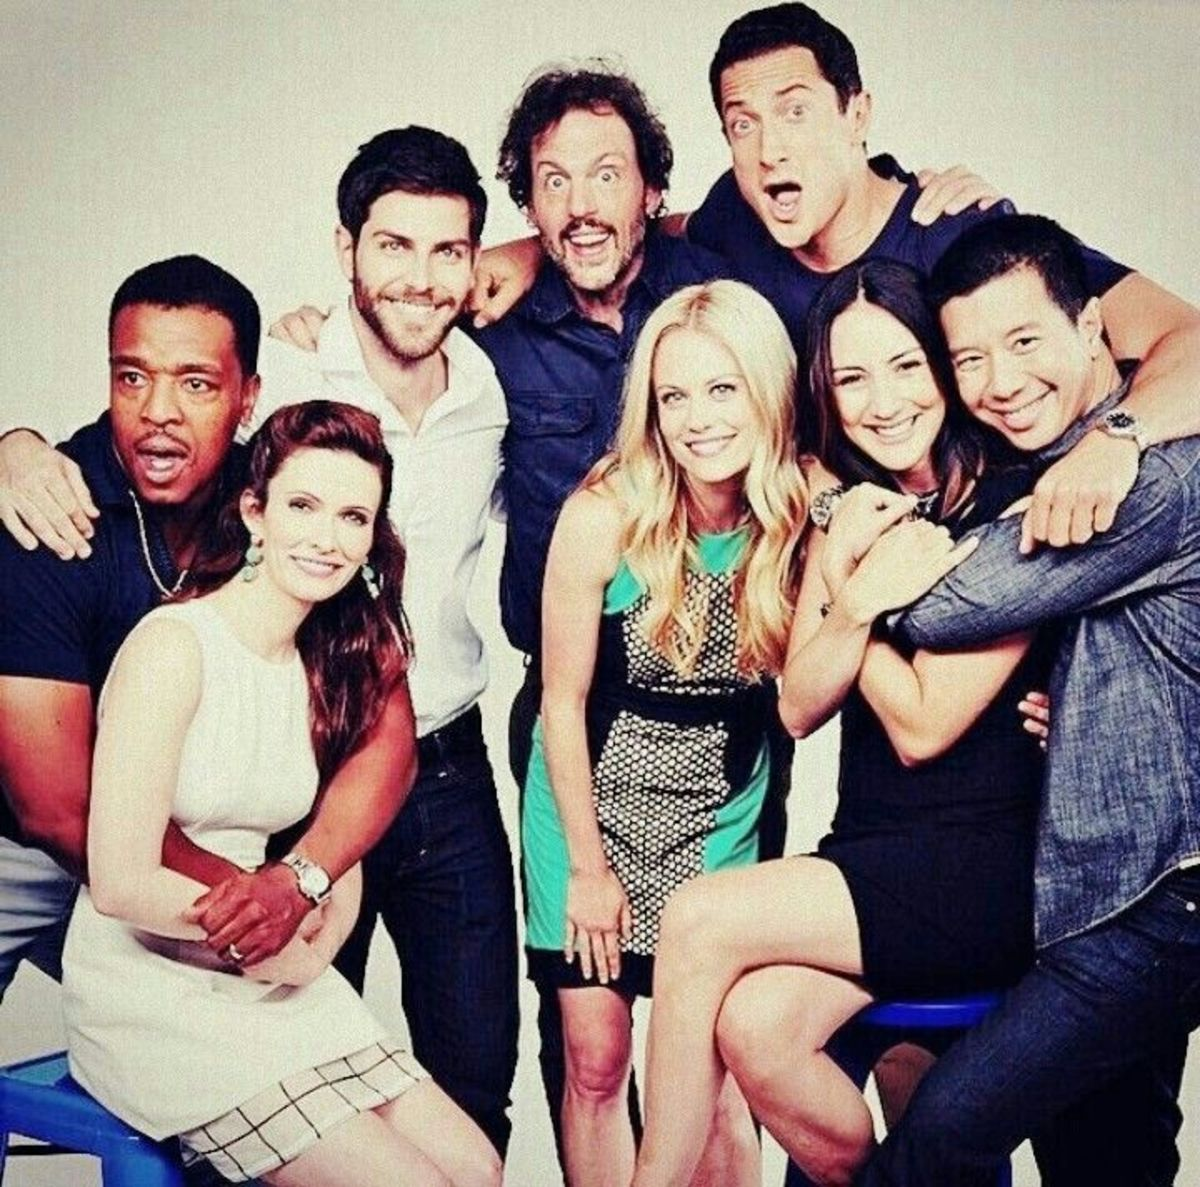 The Grimm Cast off air